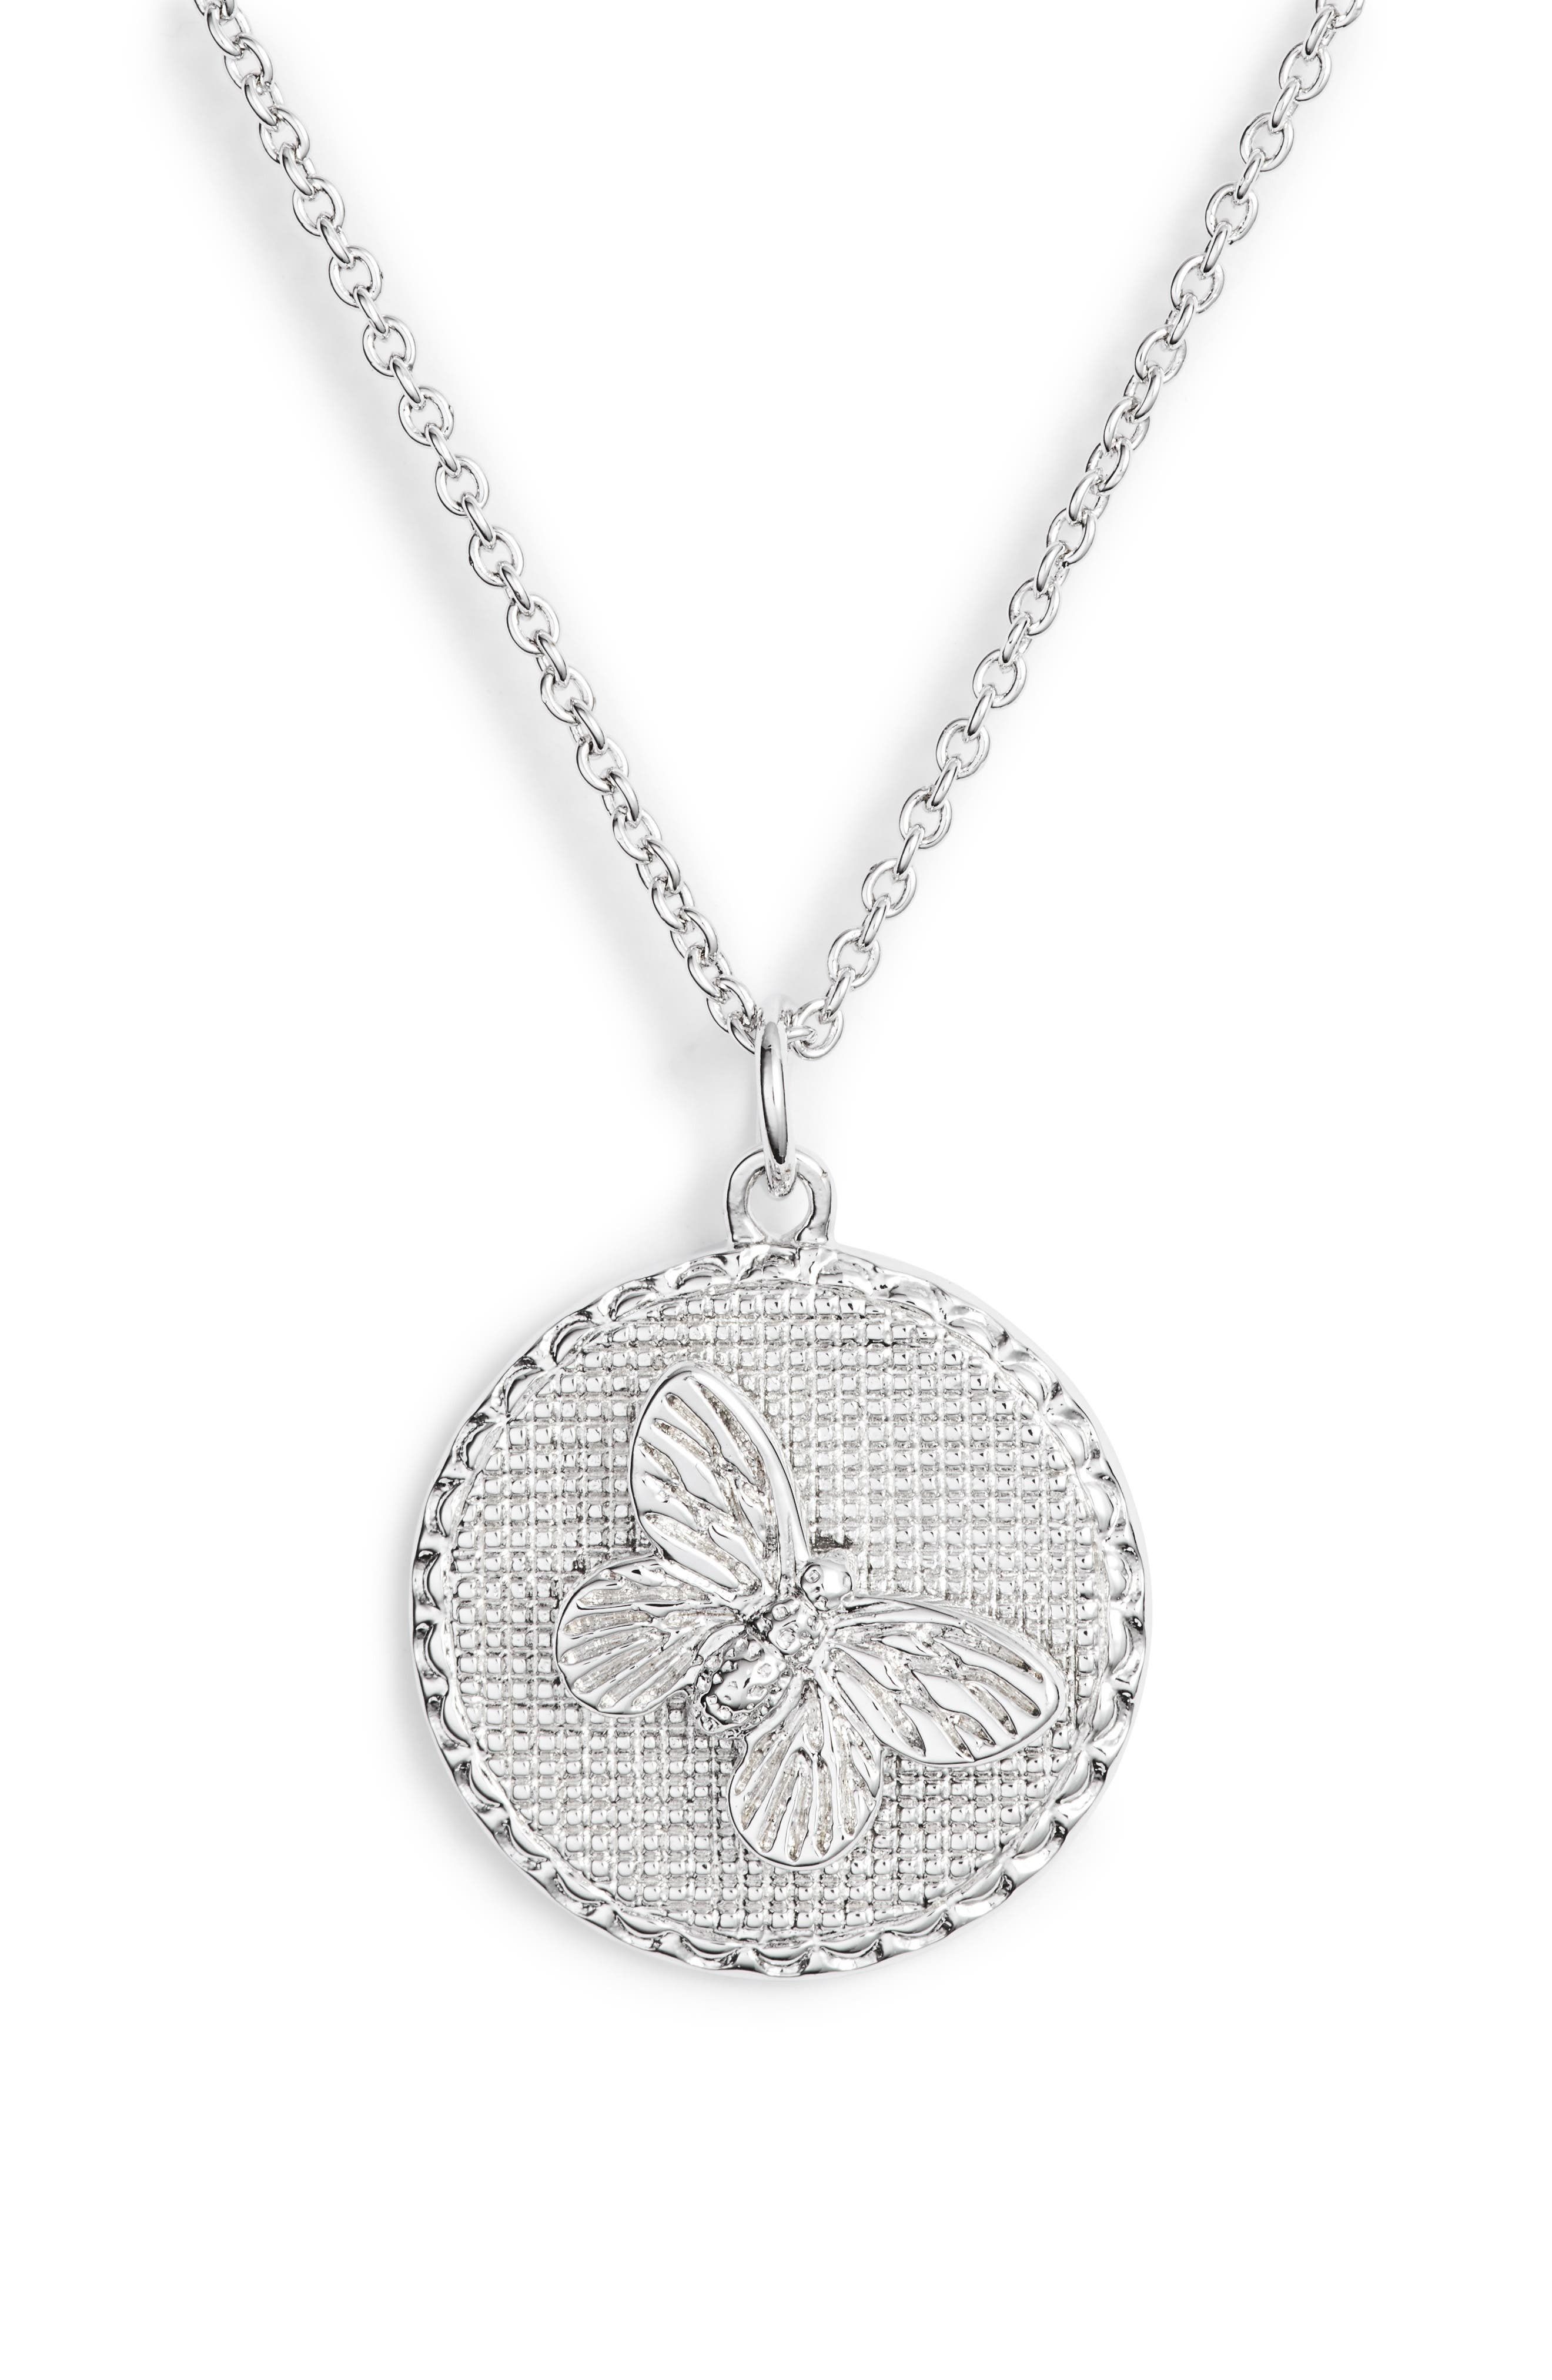 OLIVIA BURTON 3-D Butterfly Pendant Chain Necklace, 16 in Silver